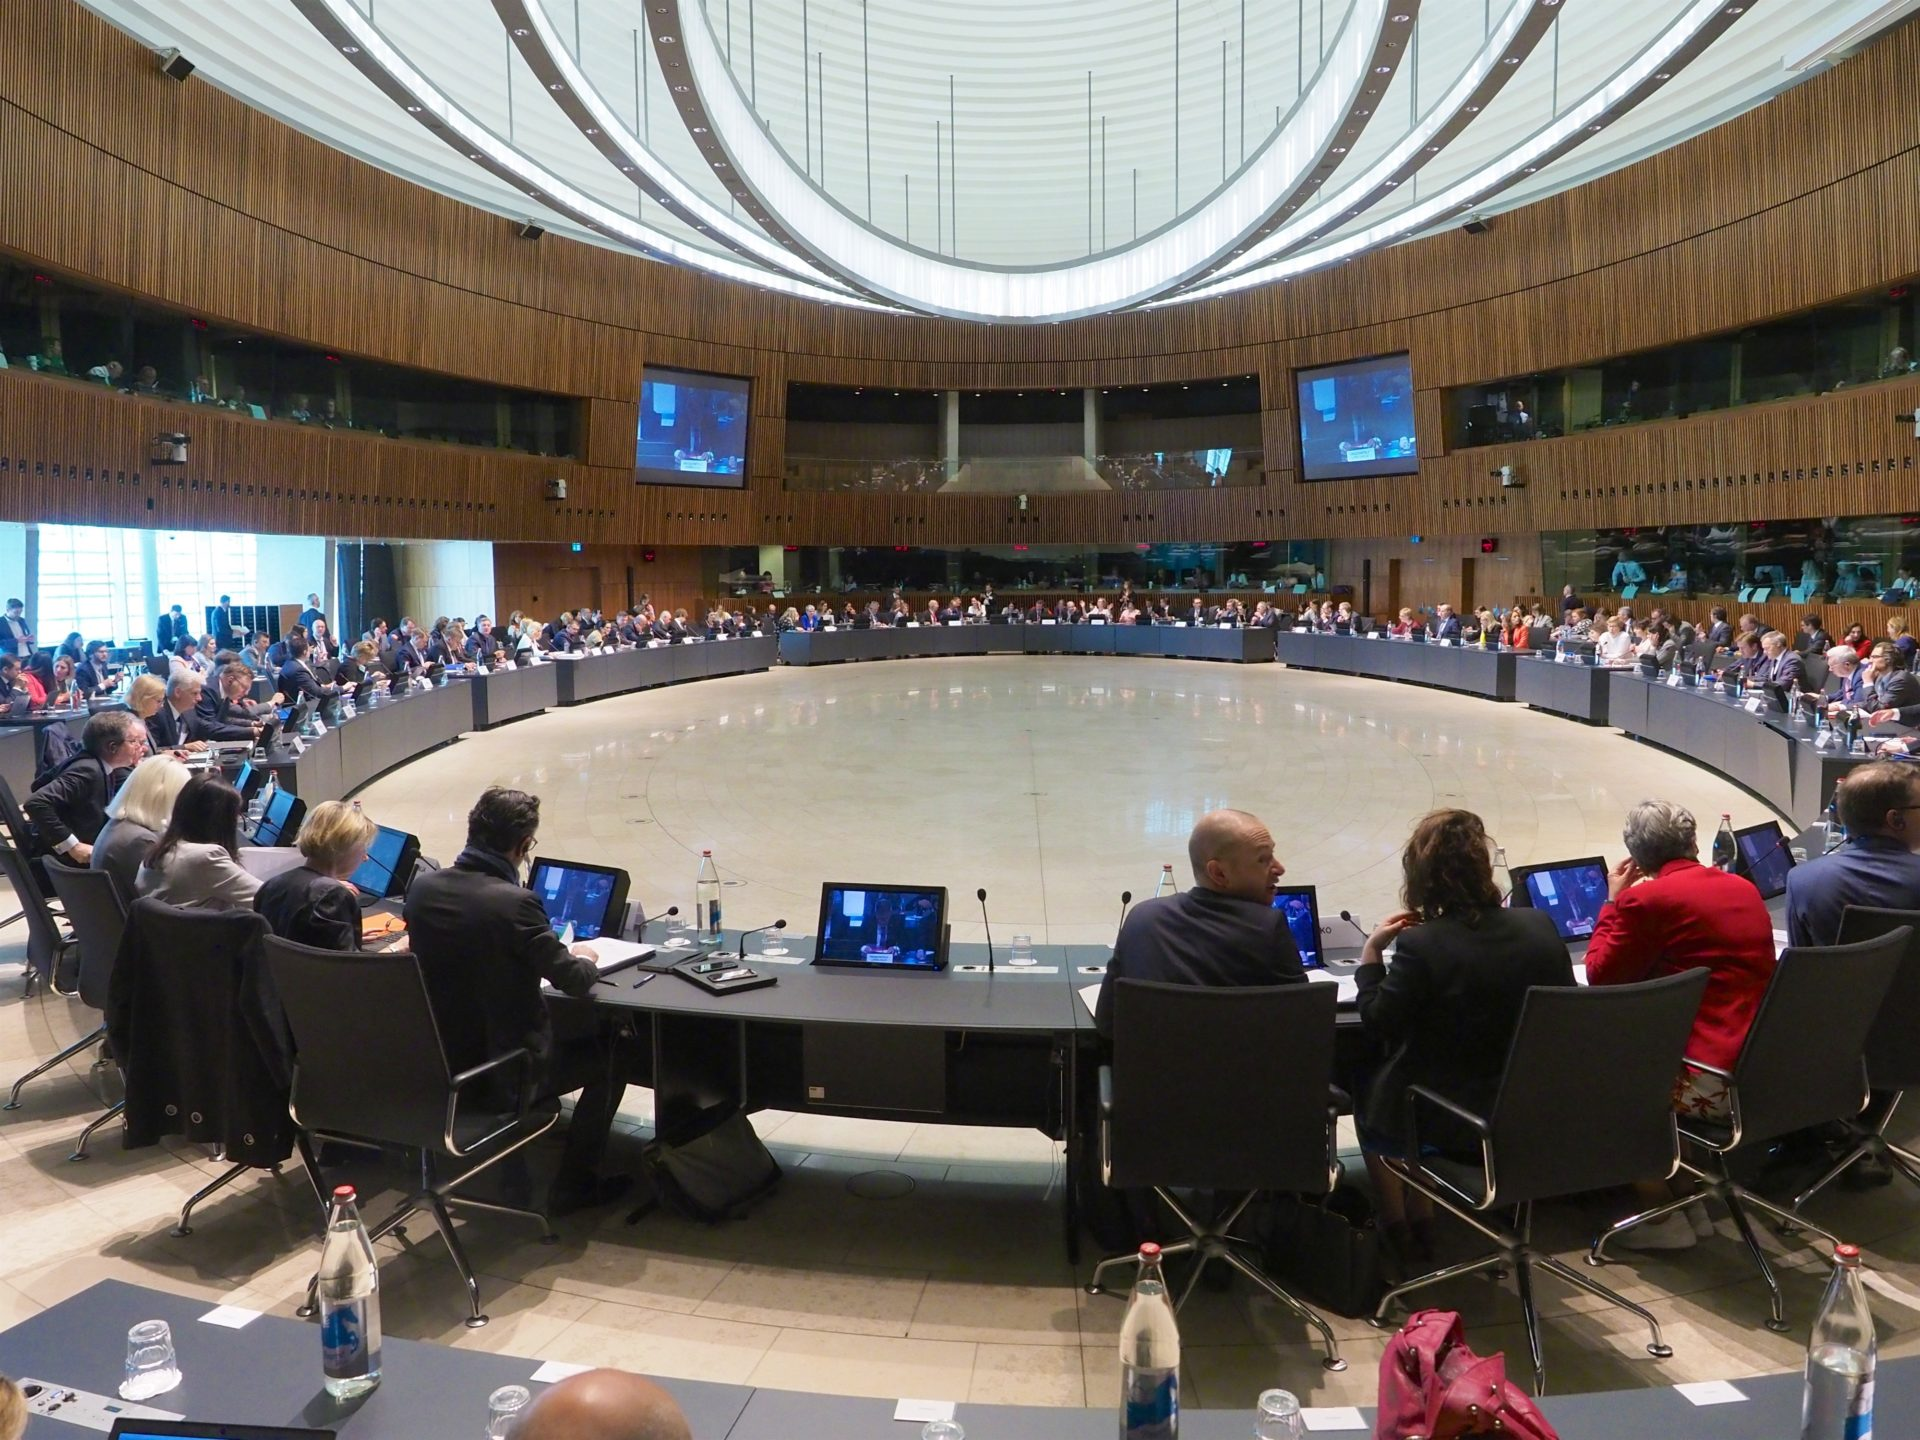 The European Semester and the Equal Treatment Directive, the main issues discussed at the EPSCO meeting in Luxembourg